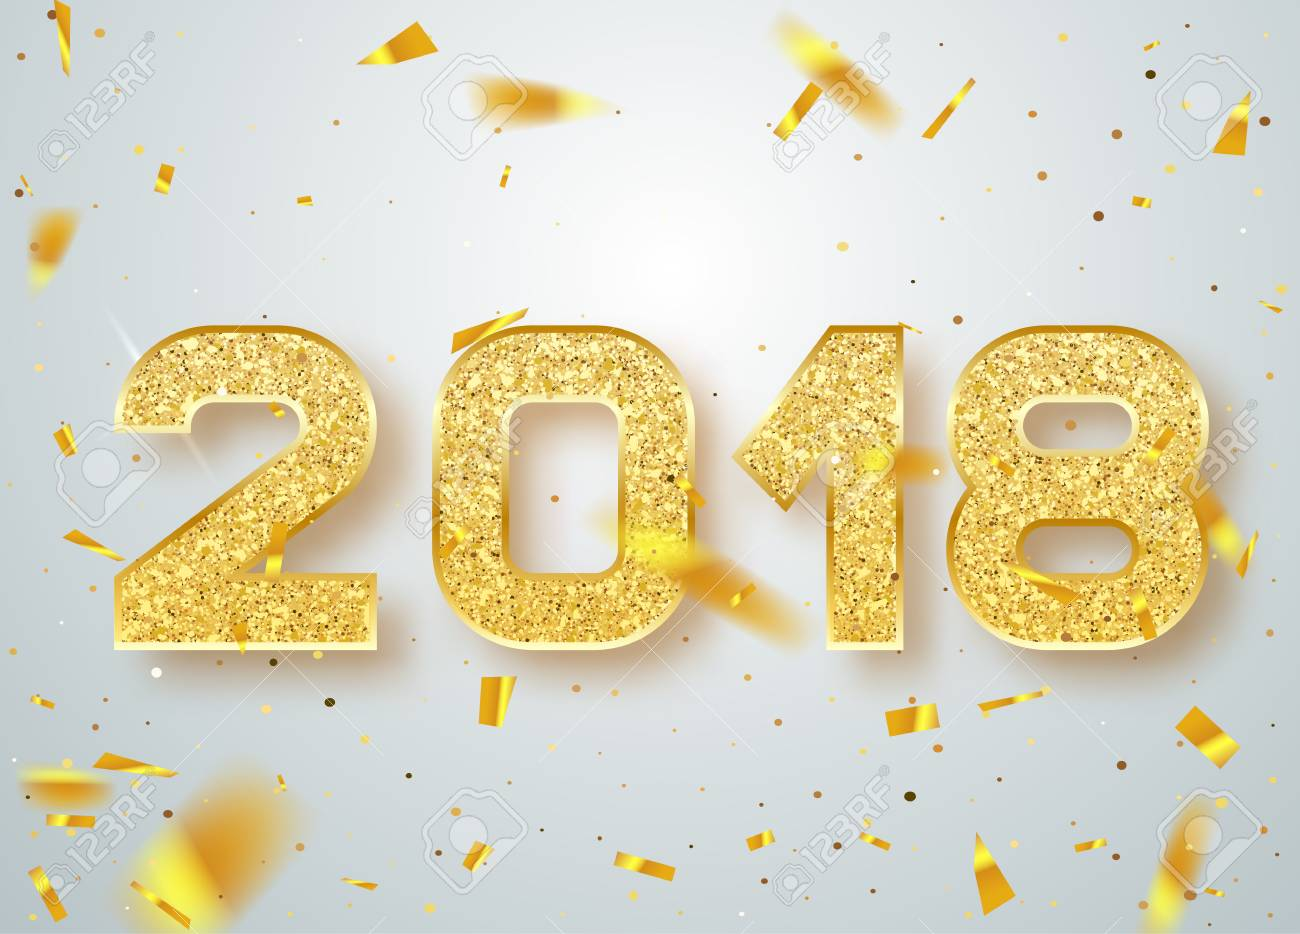 2018 happy new year gold numbers design of greeting card of gold numbers design of greeting card of falling shiny confetti kristyandbryce Choice Image